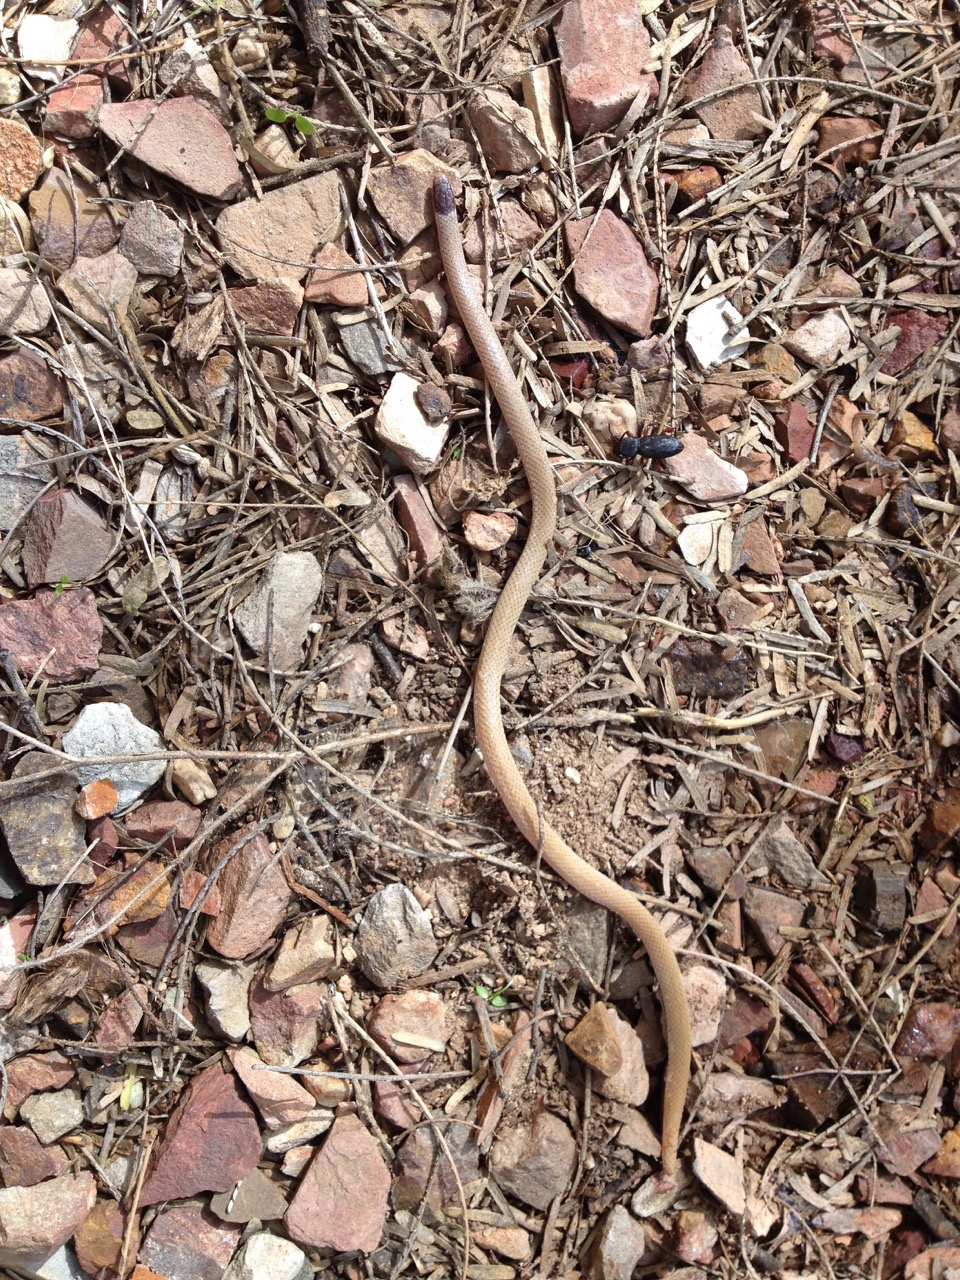 Blind Snake... so small. Look at the beetle beside it, and the scorpion!